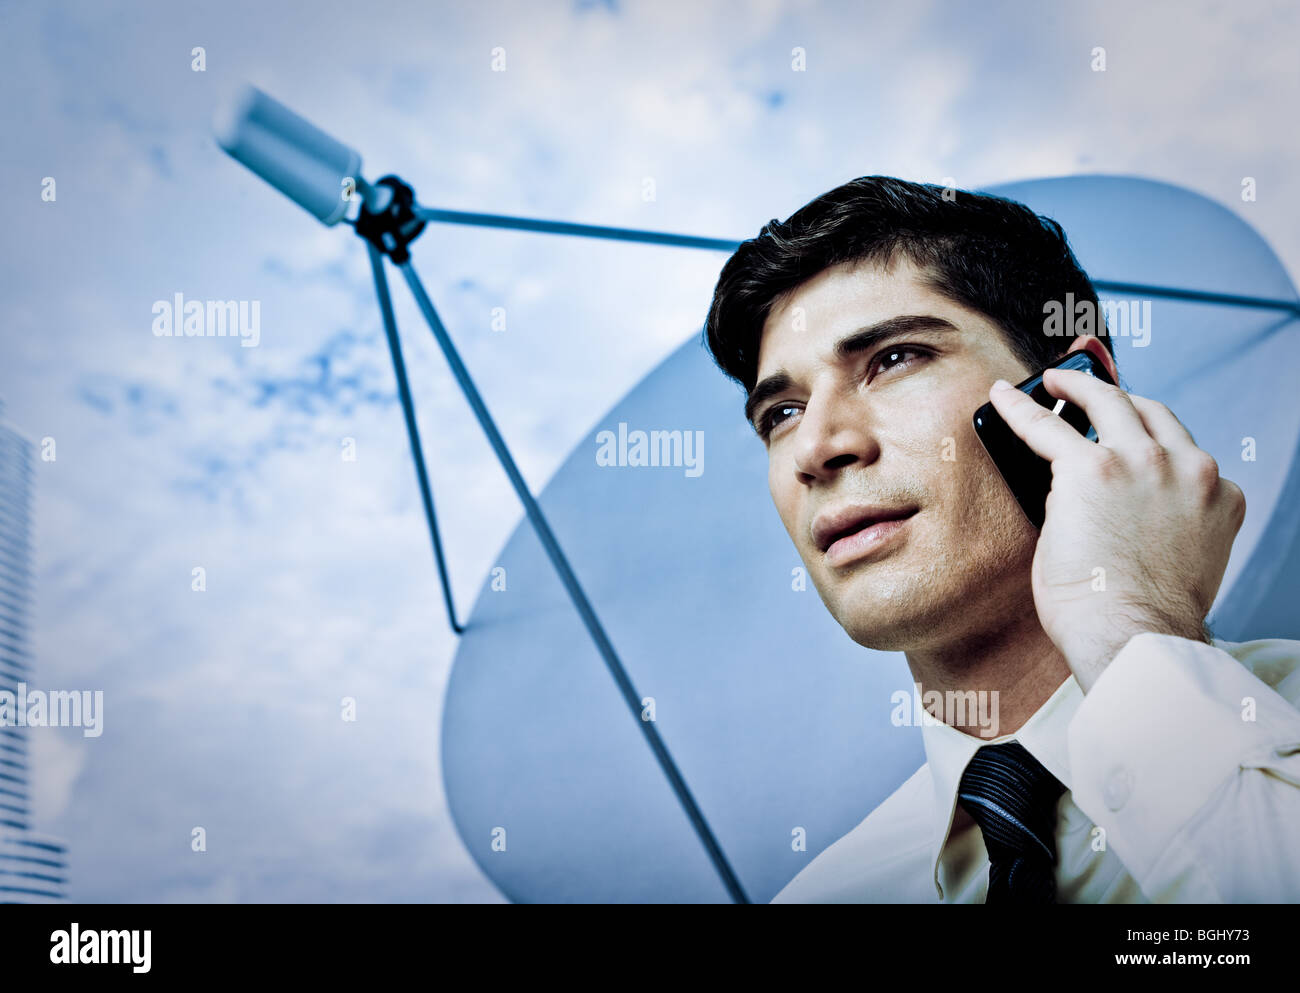 A young male businessperson on a cellular phone with satellite dish in background. - Stock Image